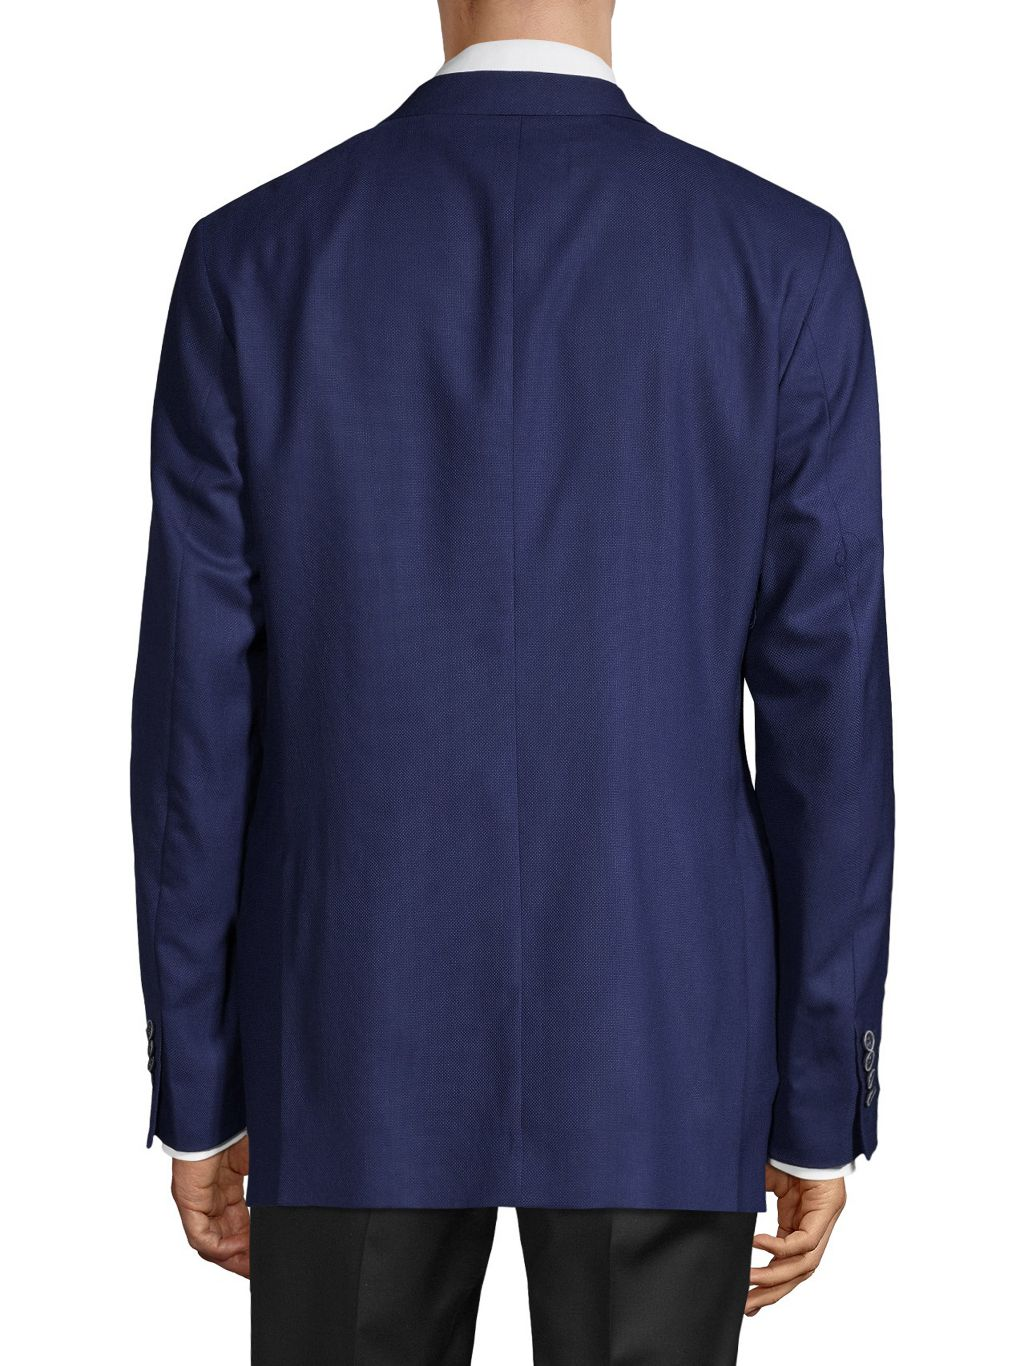 Saks Fifth Avenue Made in Italy Standard-Fit Wool & Silk High Performance Suit Jacket